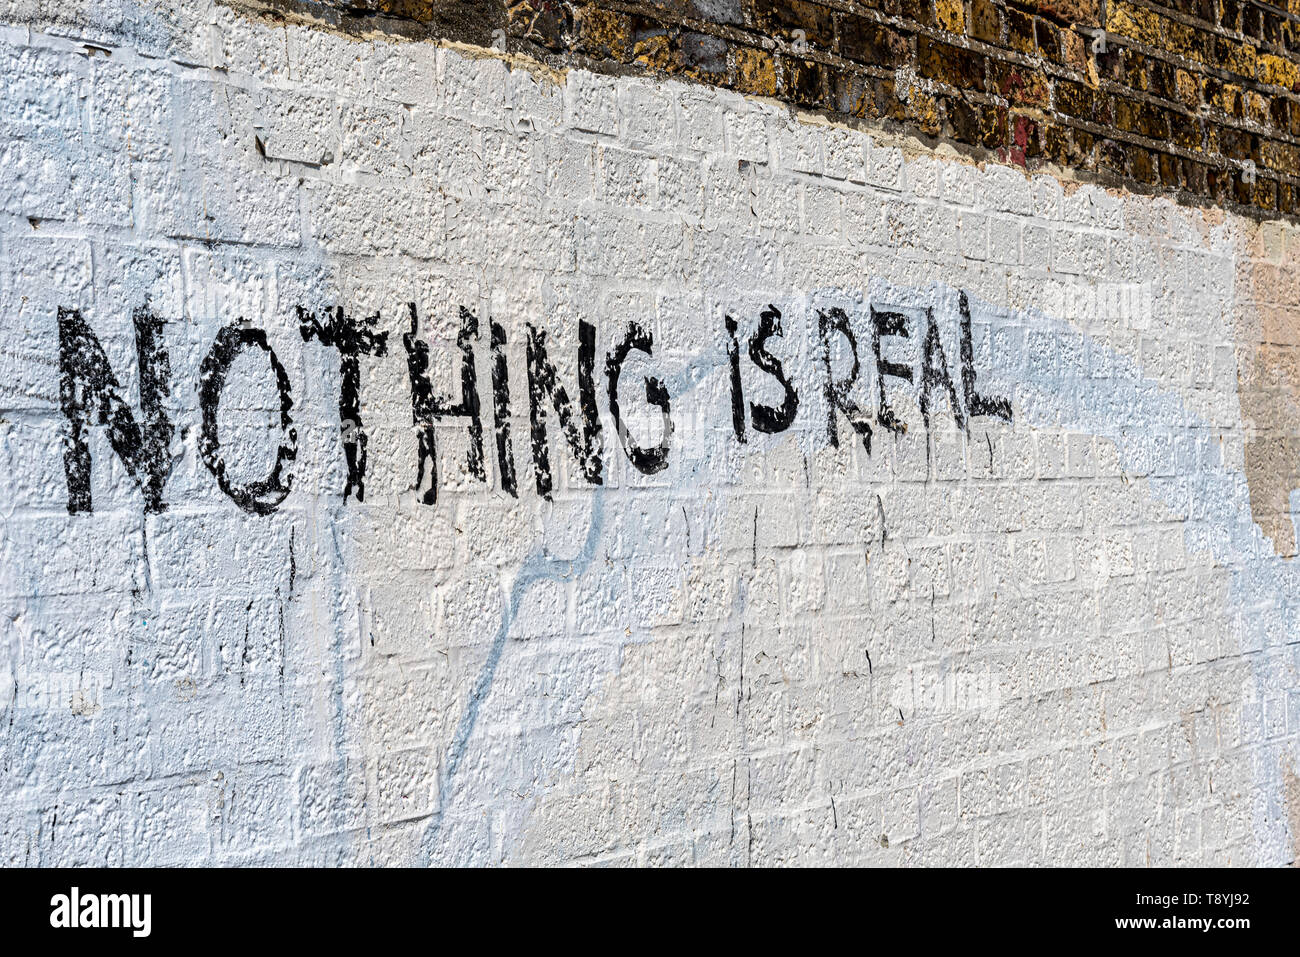 Nothing is real. Graffiti on the wall of Chalkwell railway station on Chalkwell beach, Essex, UK - Stock Image